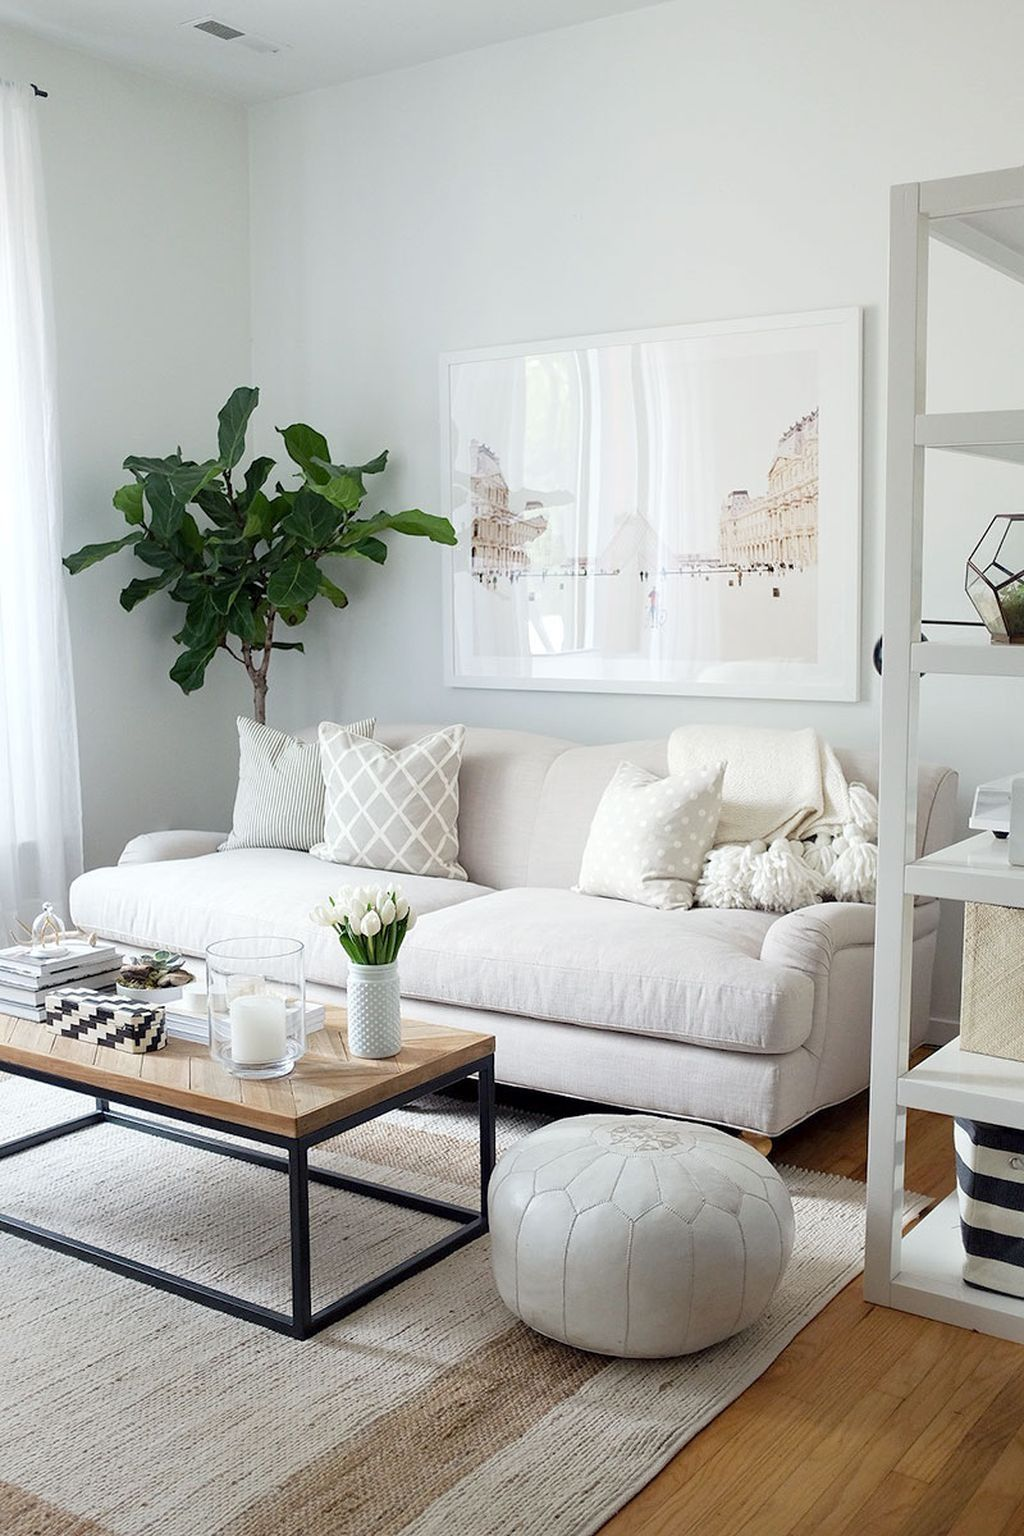 Creative bedroom decor ideas awesome  creative living room decoration ideas for small apartment